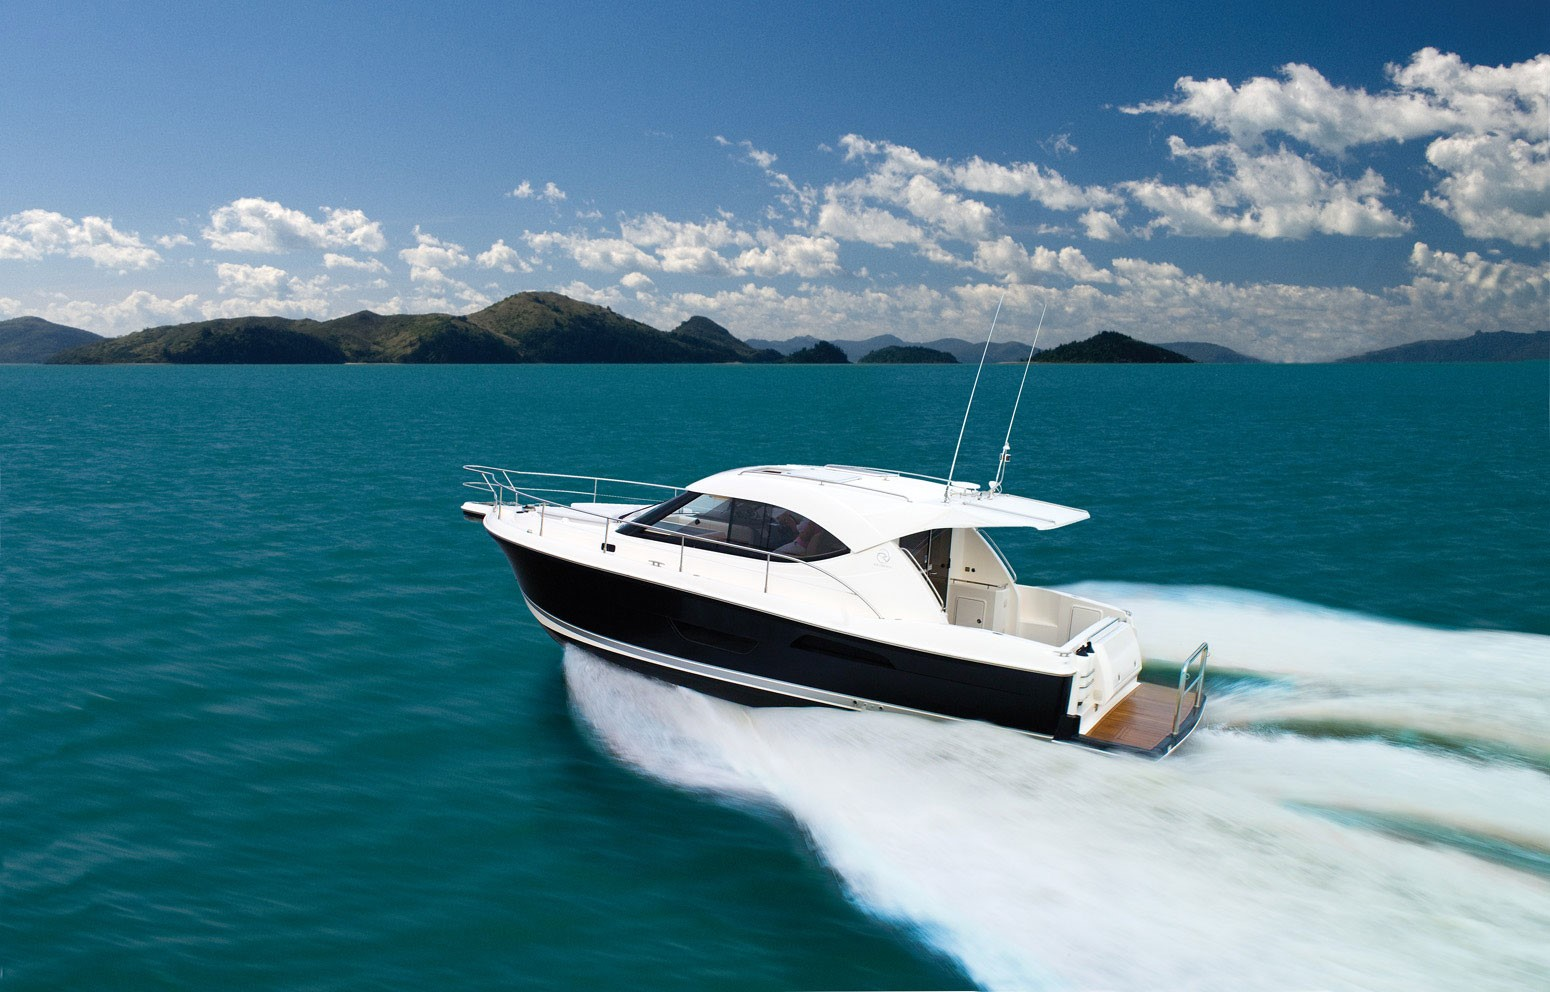 Riviera 3600 Sport Yacht for sale - running